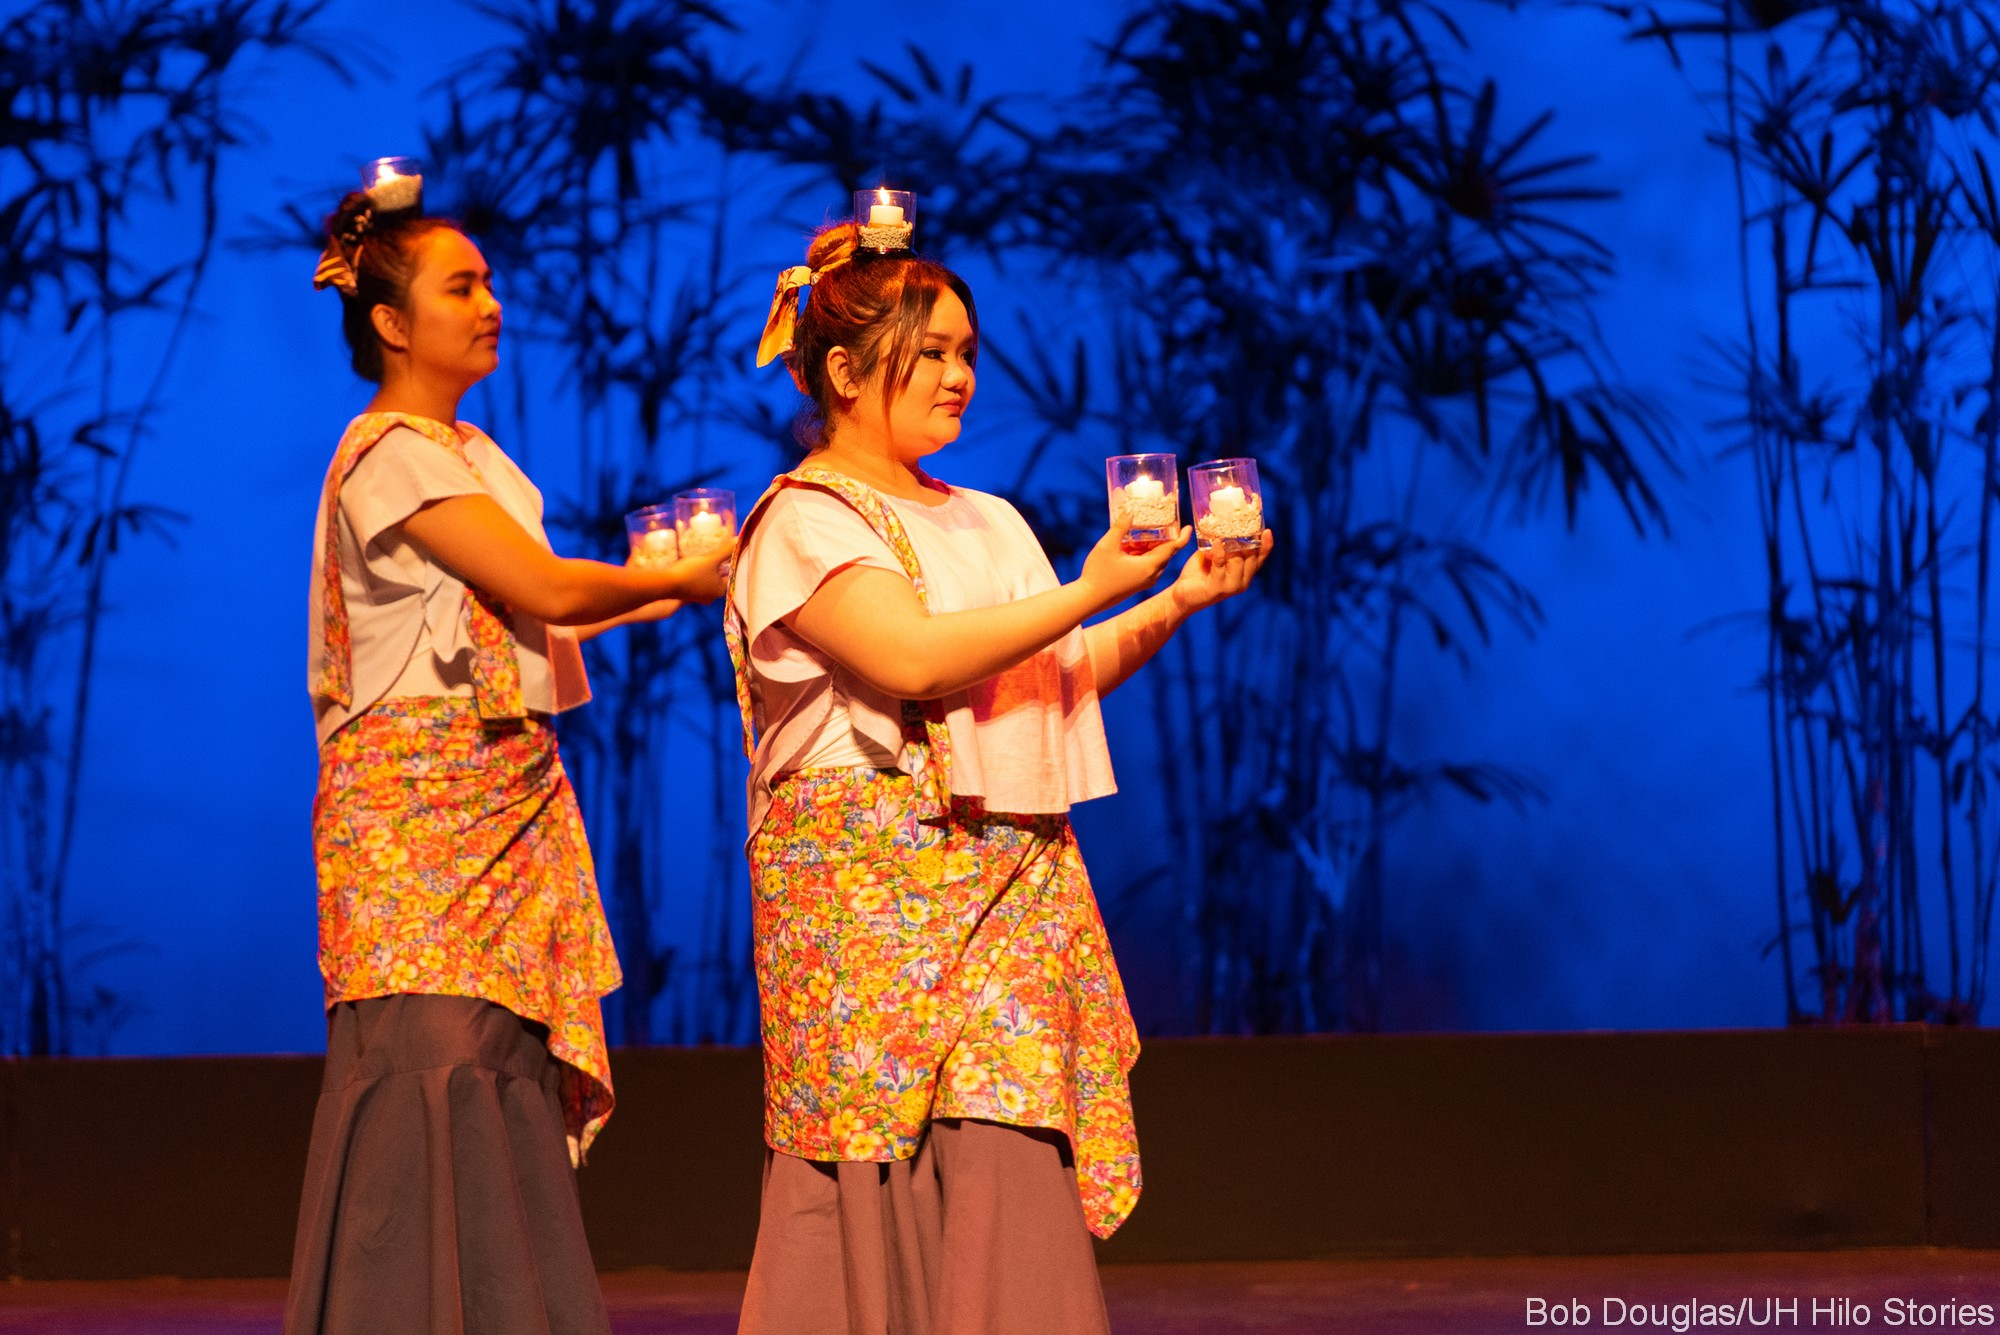 Two women doing traditional Philippine folk dance with candles.